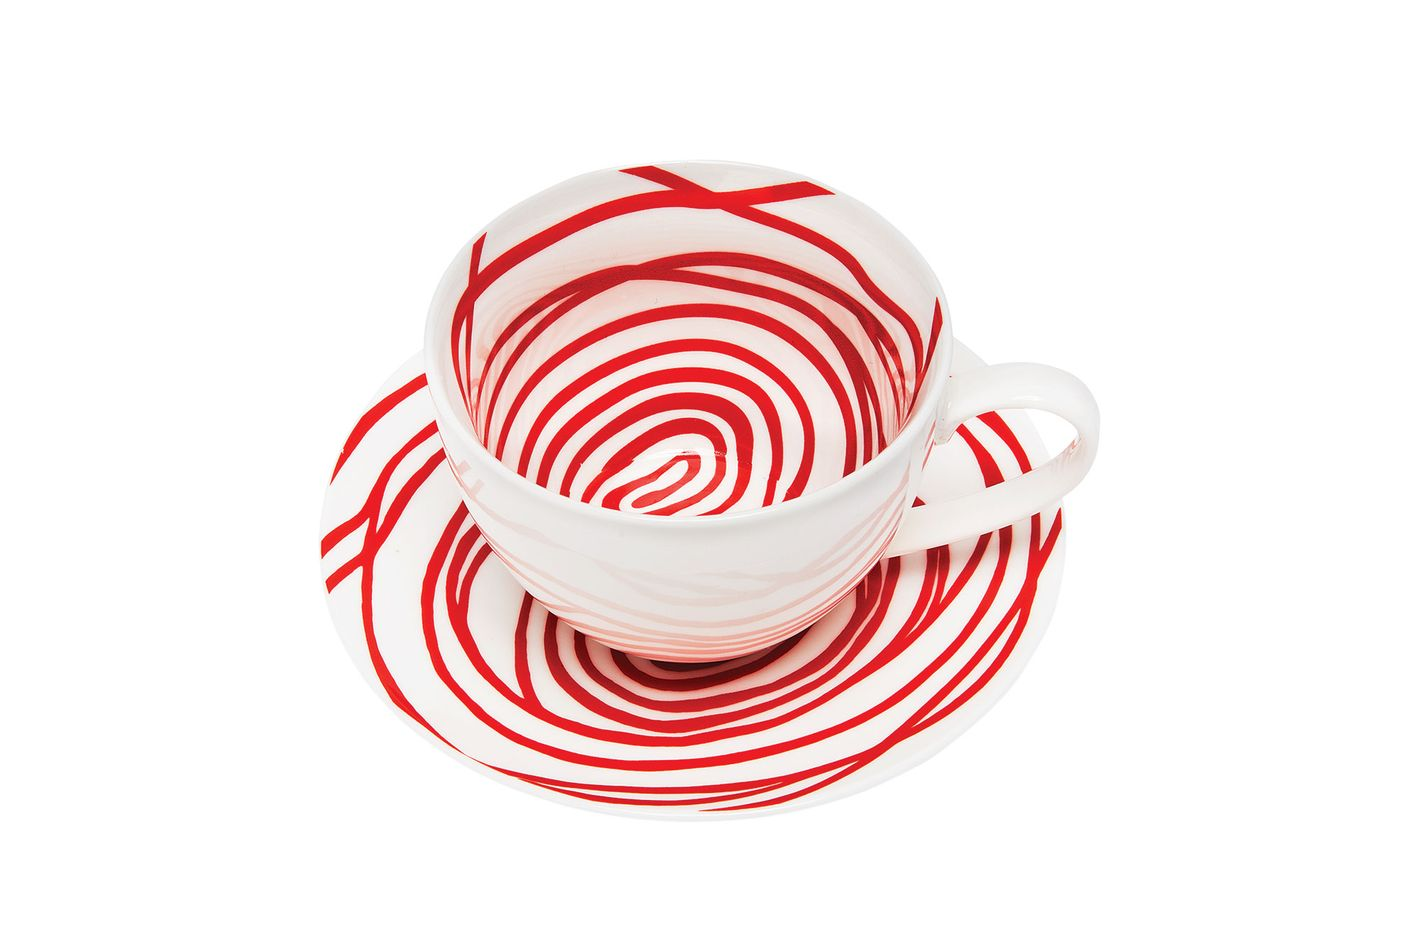 """Louise Bourgeois """"Spirals"""" teacups and saucers"""